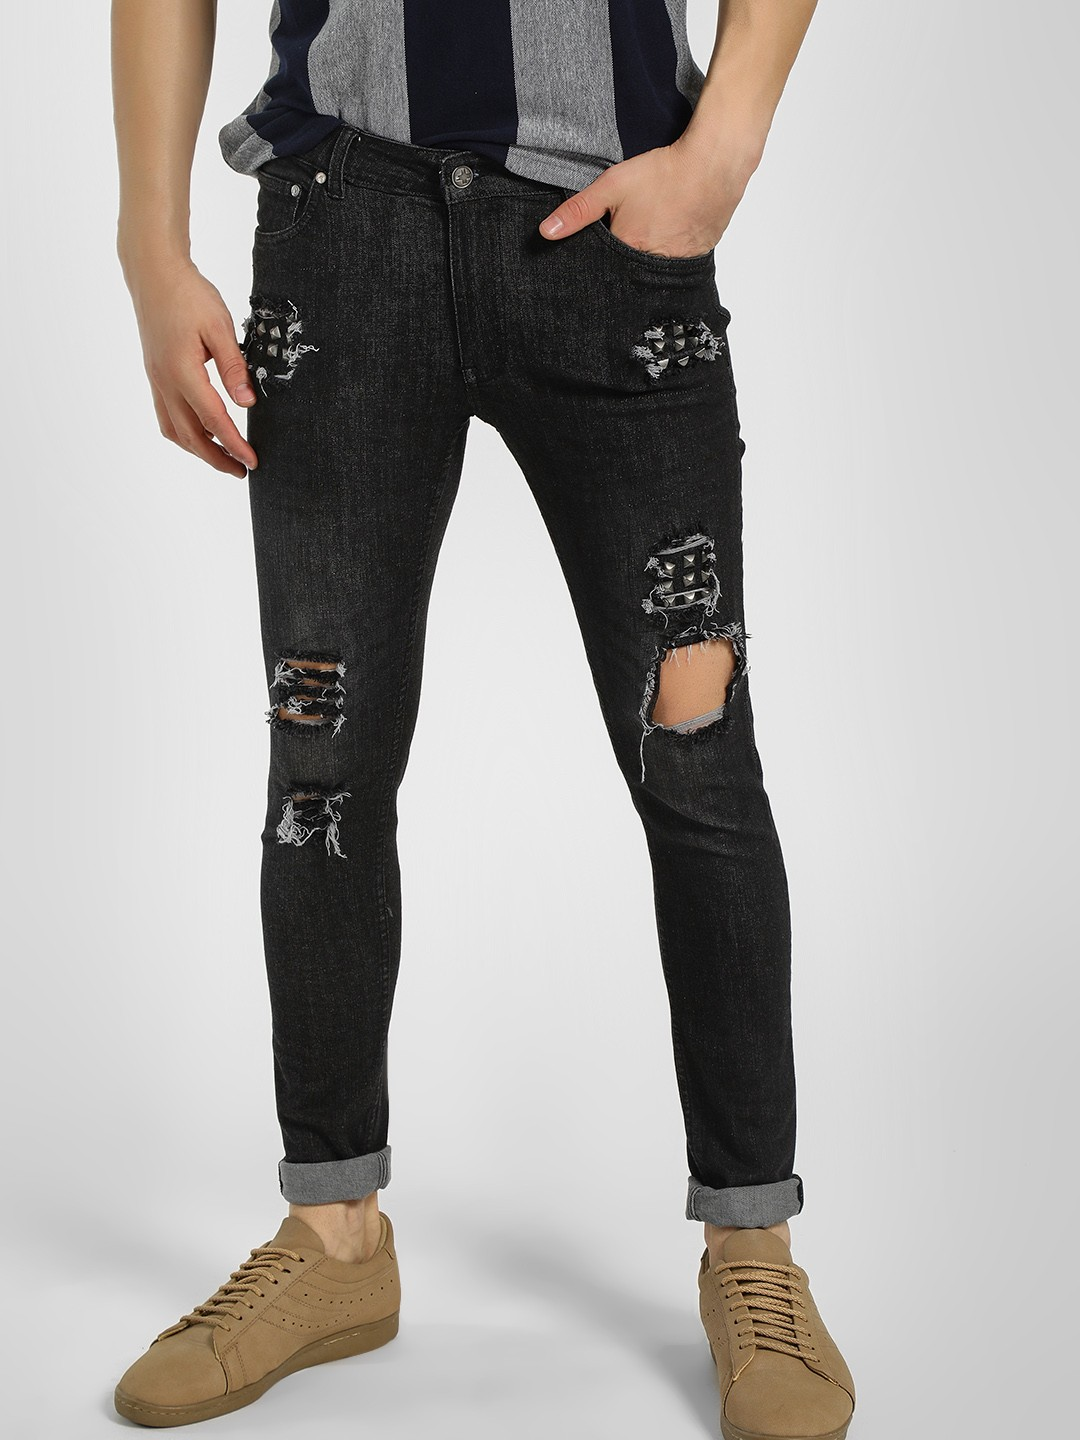 Kultprit Black Studded Distressed Slim Fit Jeans 1